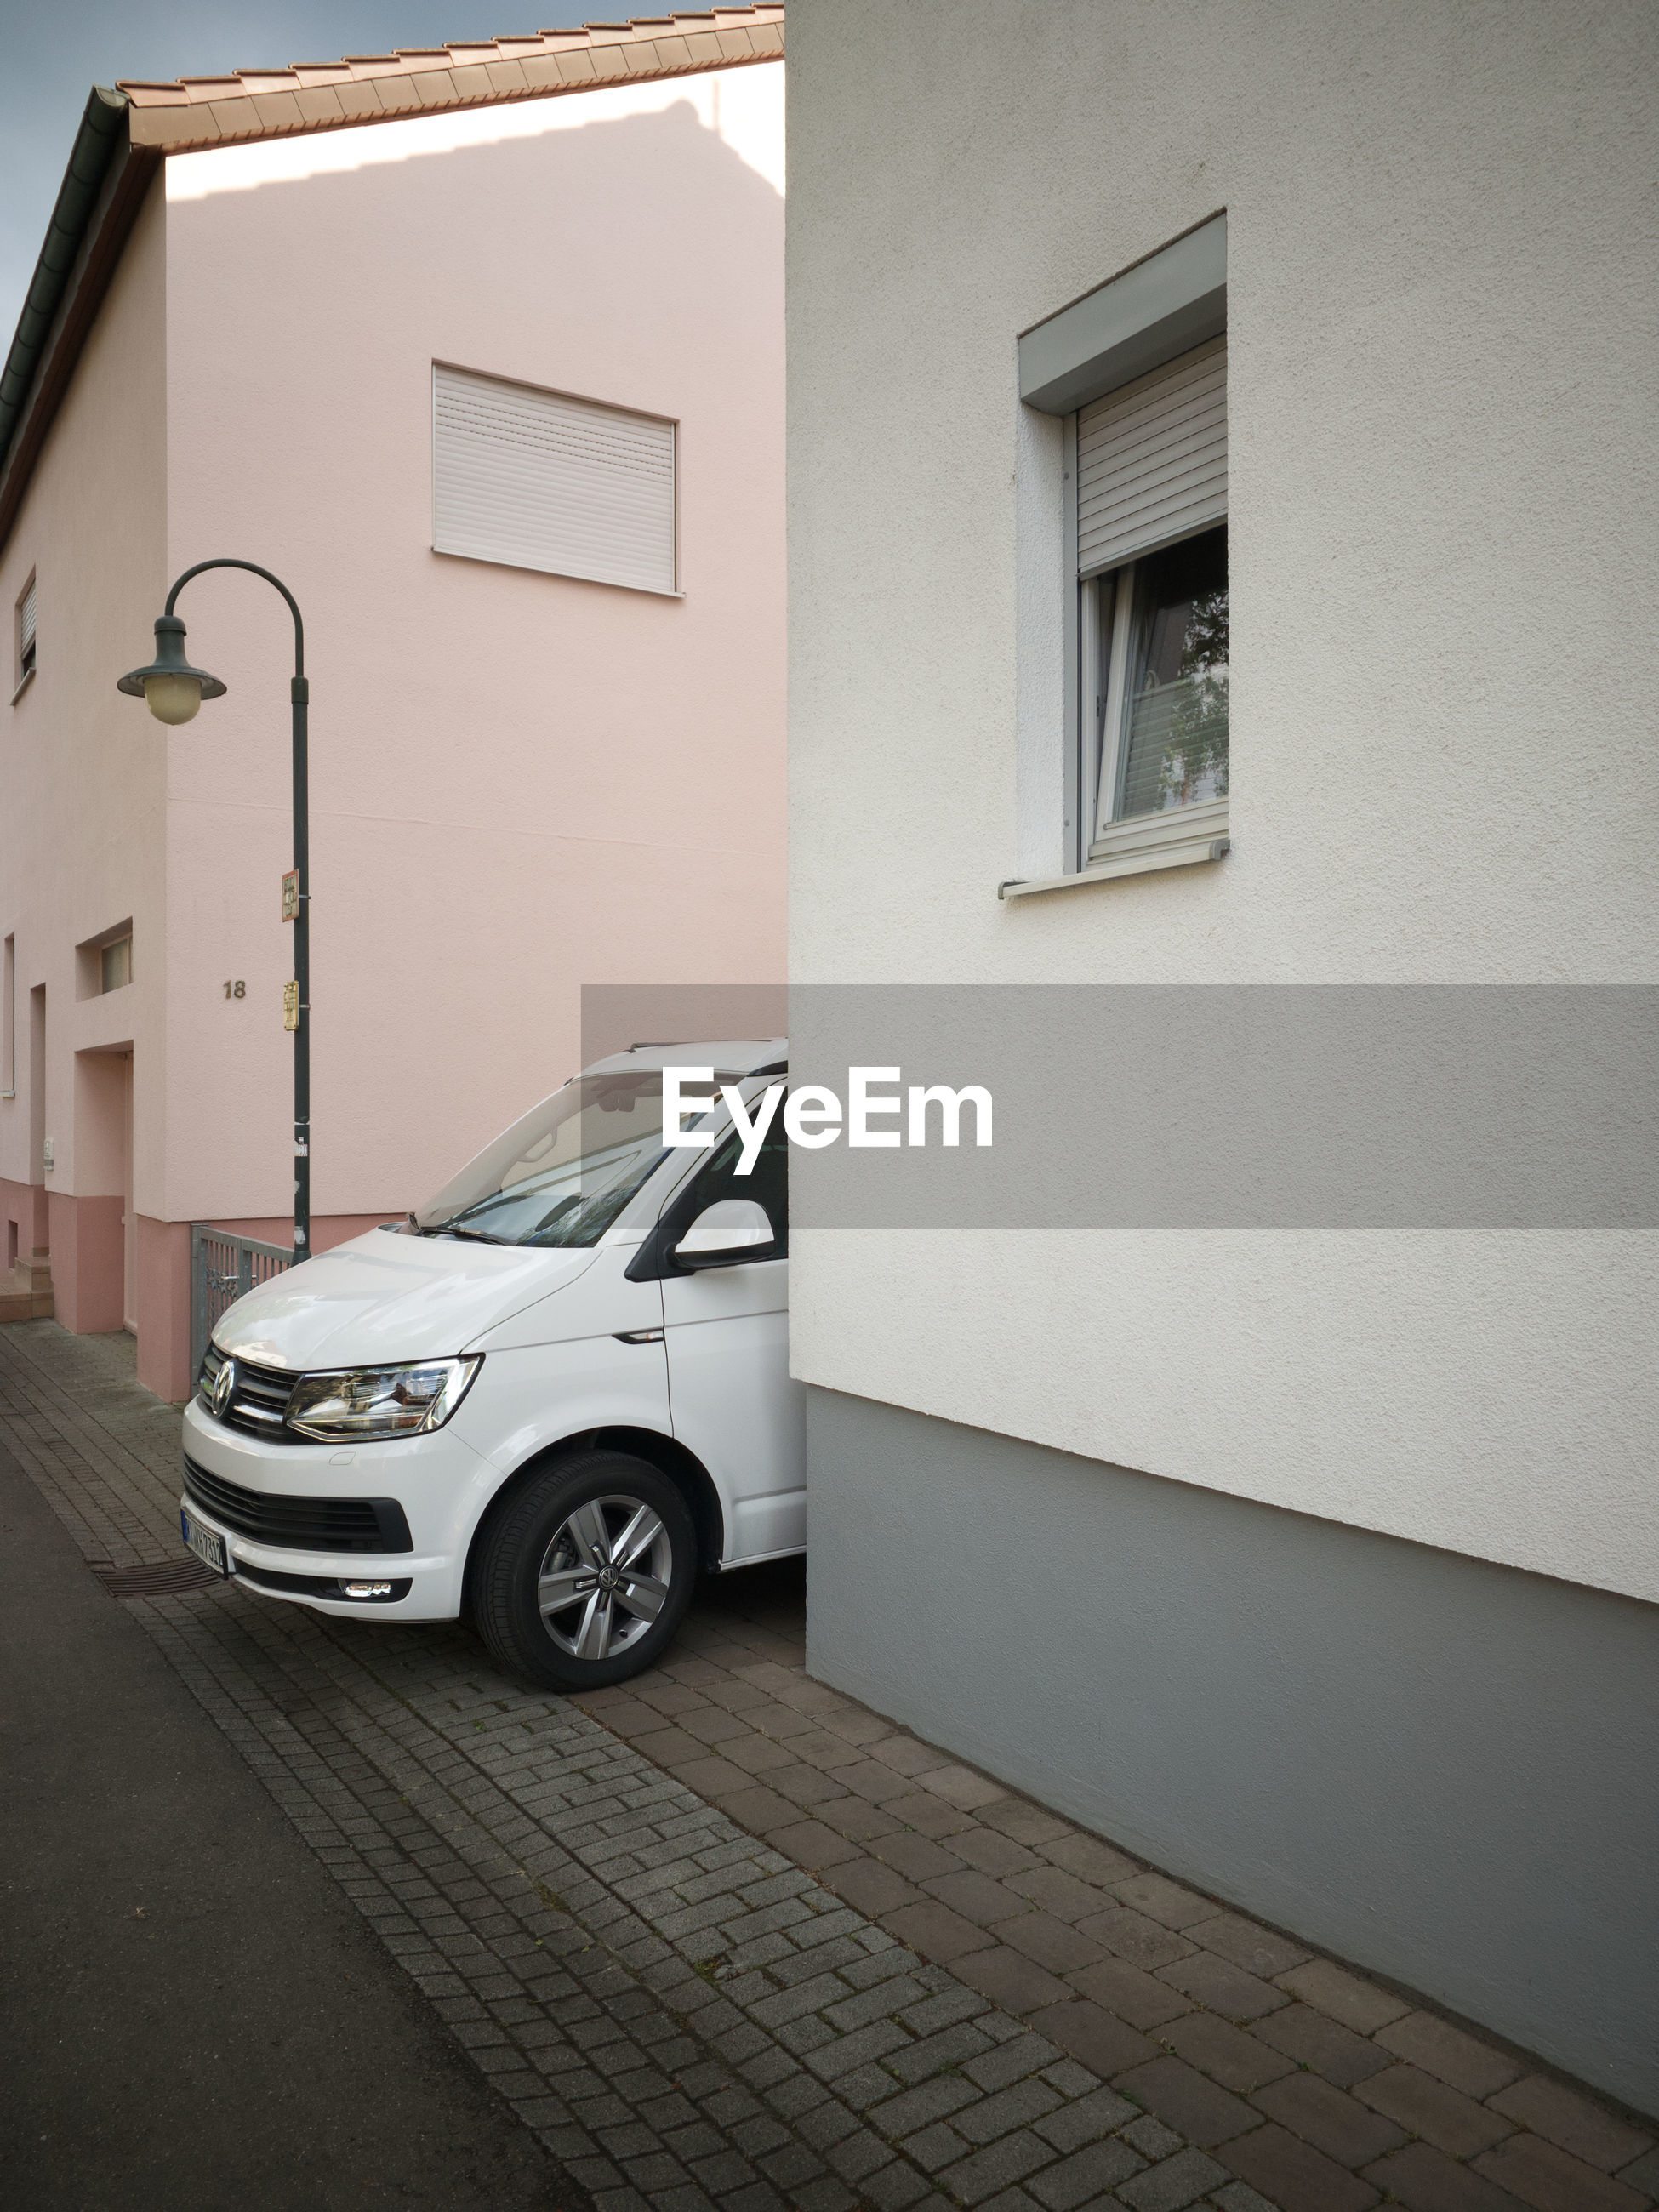 CAR ON STREET BY BUILDING